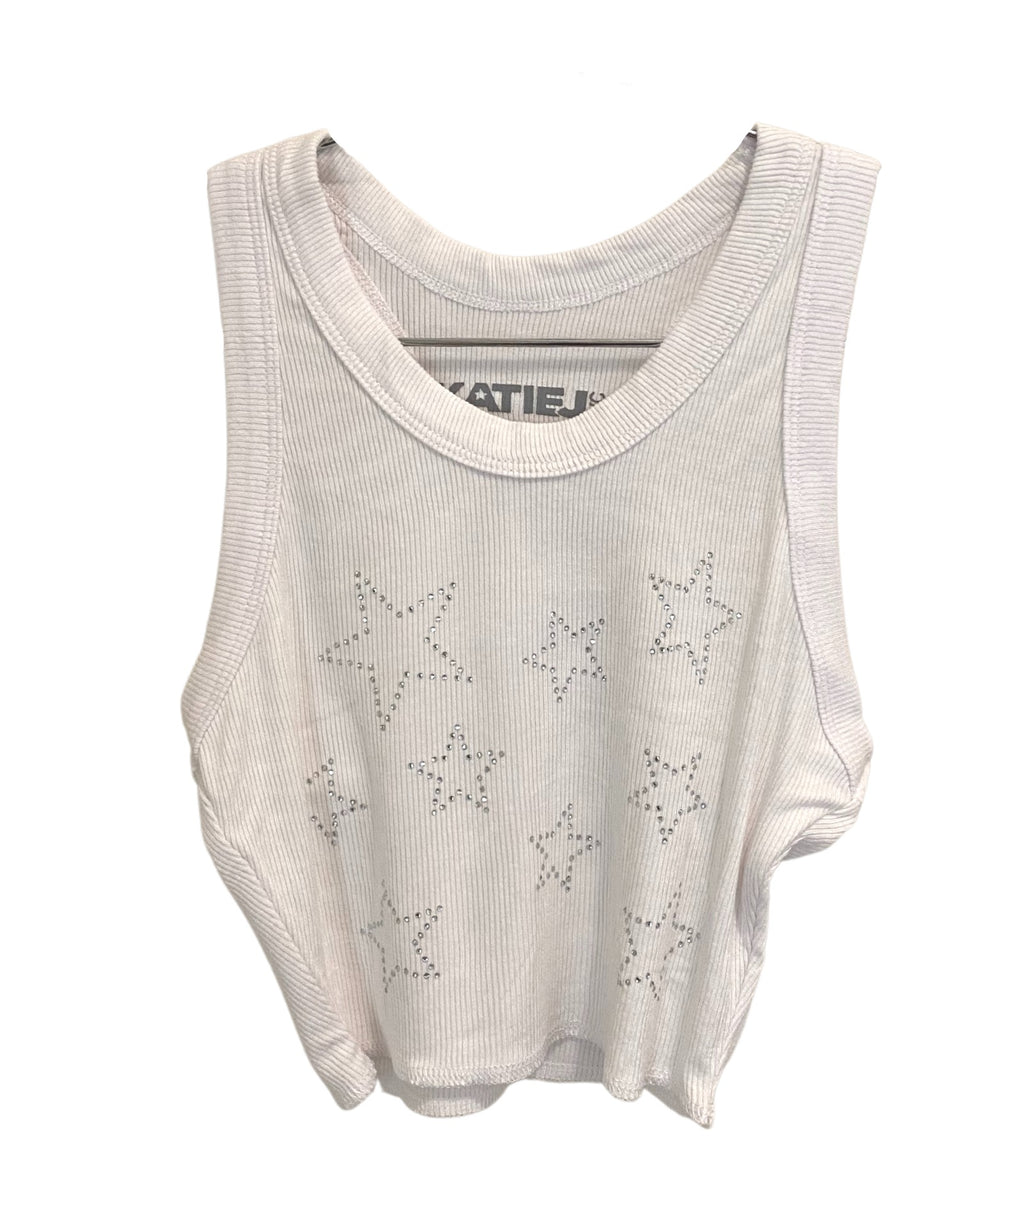 Katie J NYC Girls Livi White With Stars Crop Top